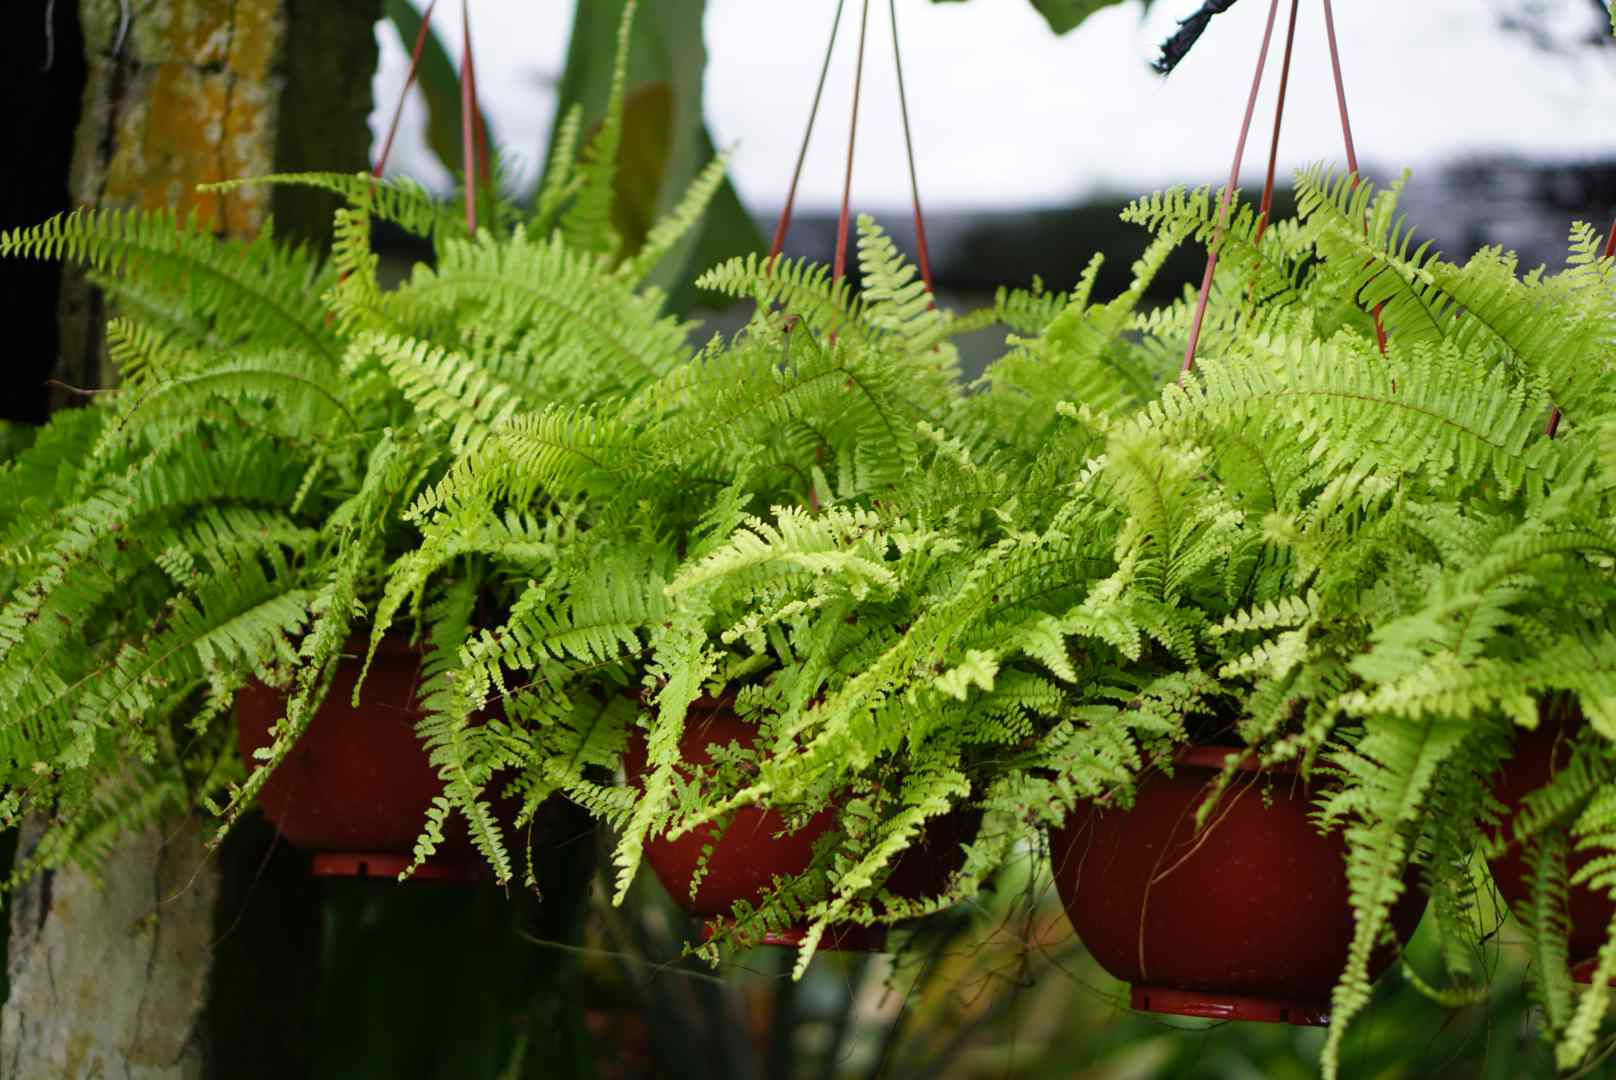 Kimberley queen ferns potted in three hanging baskets